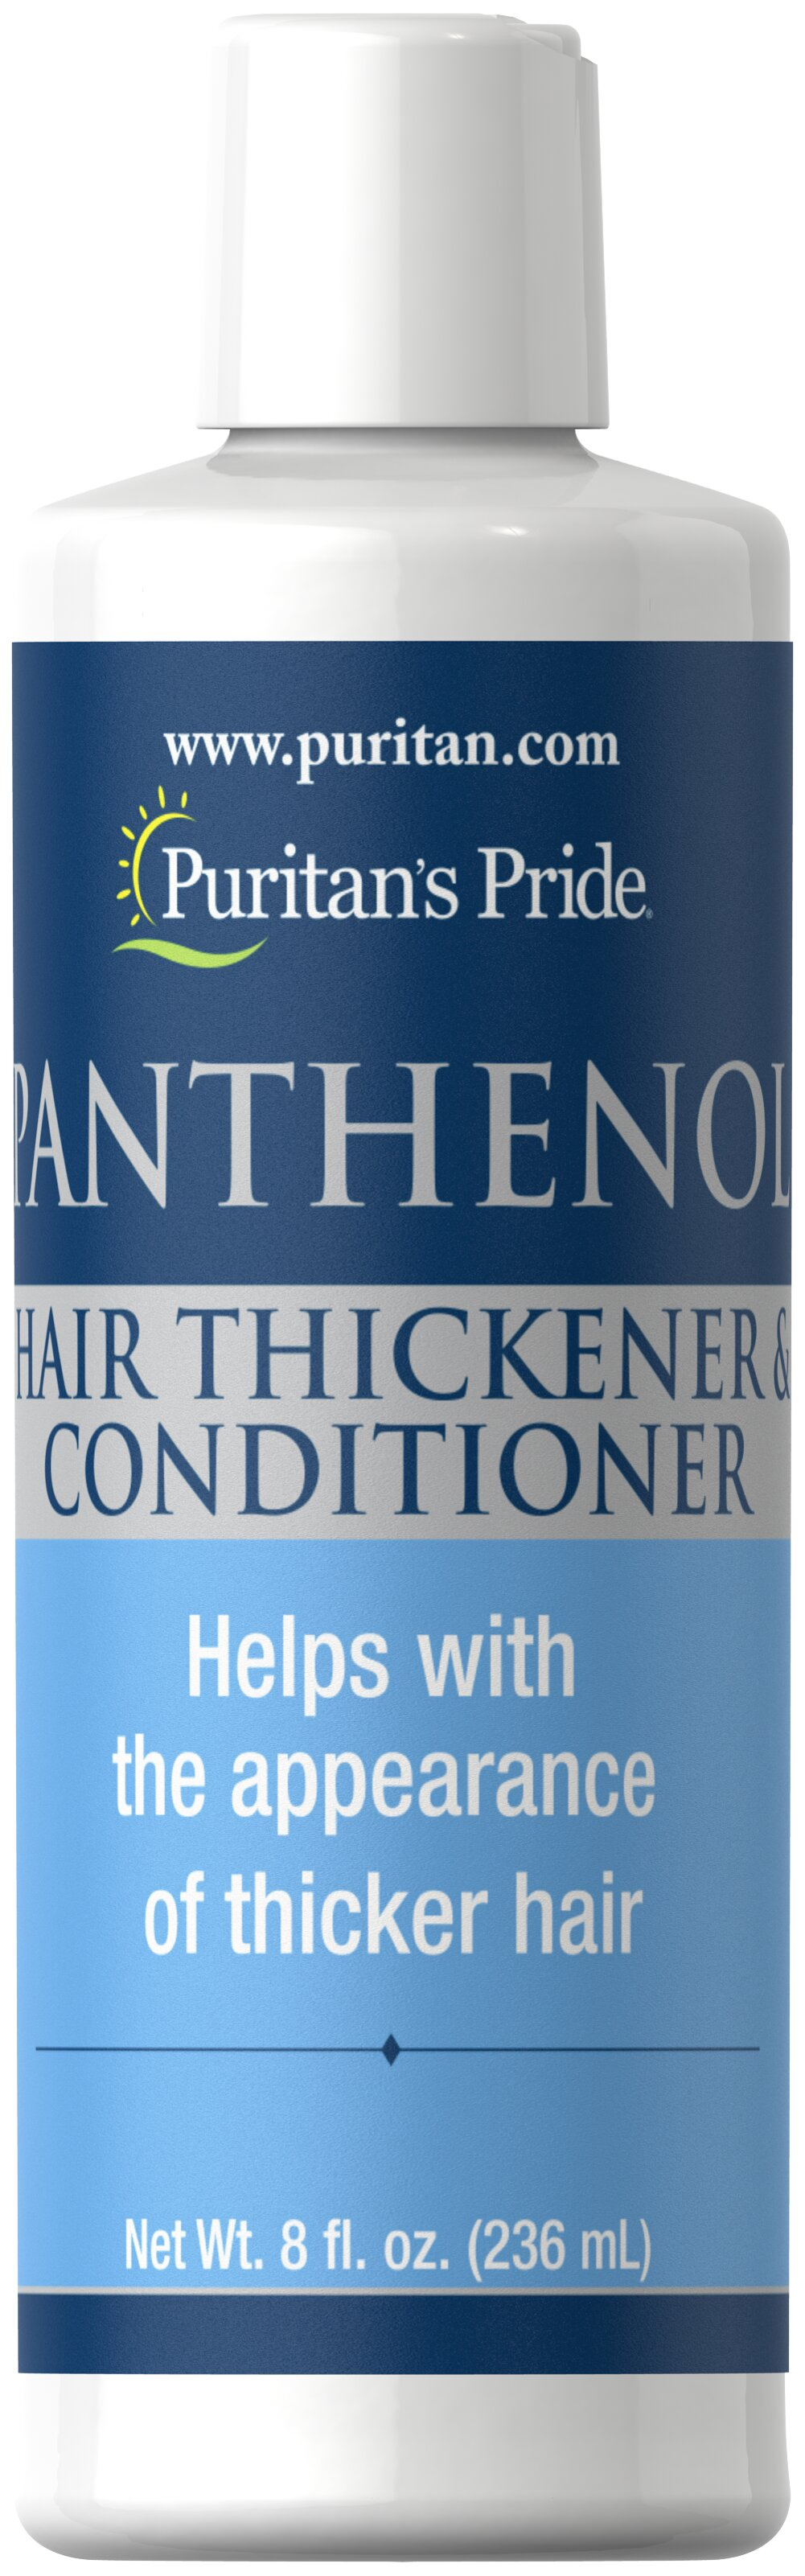 Panthenol Hair Thickener & Conditioner  8 fl oz Conditioner  $13.99